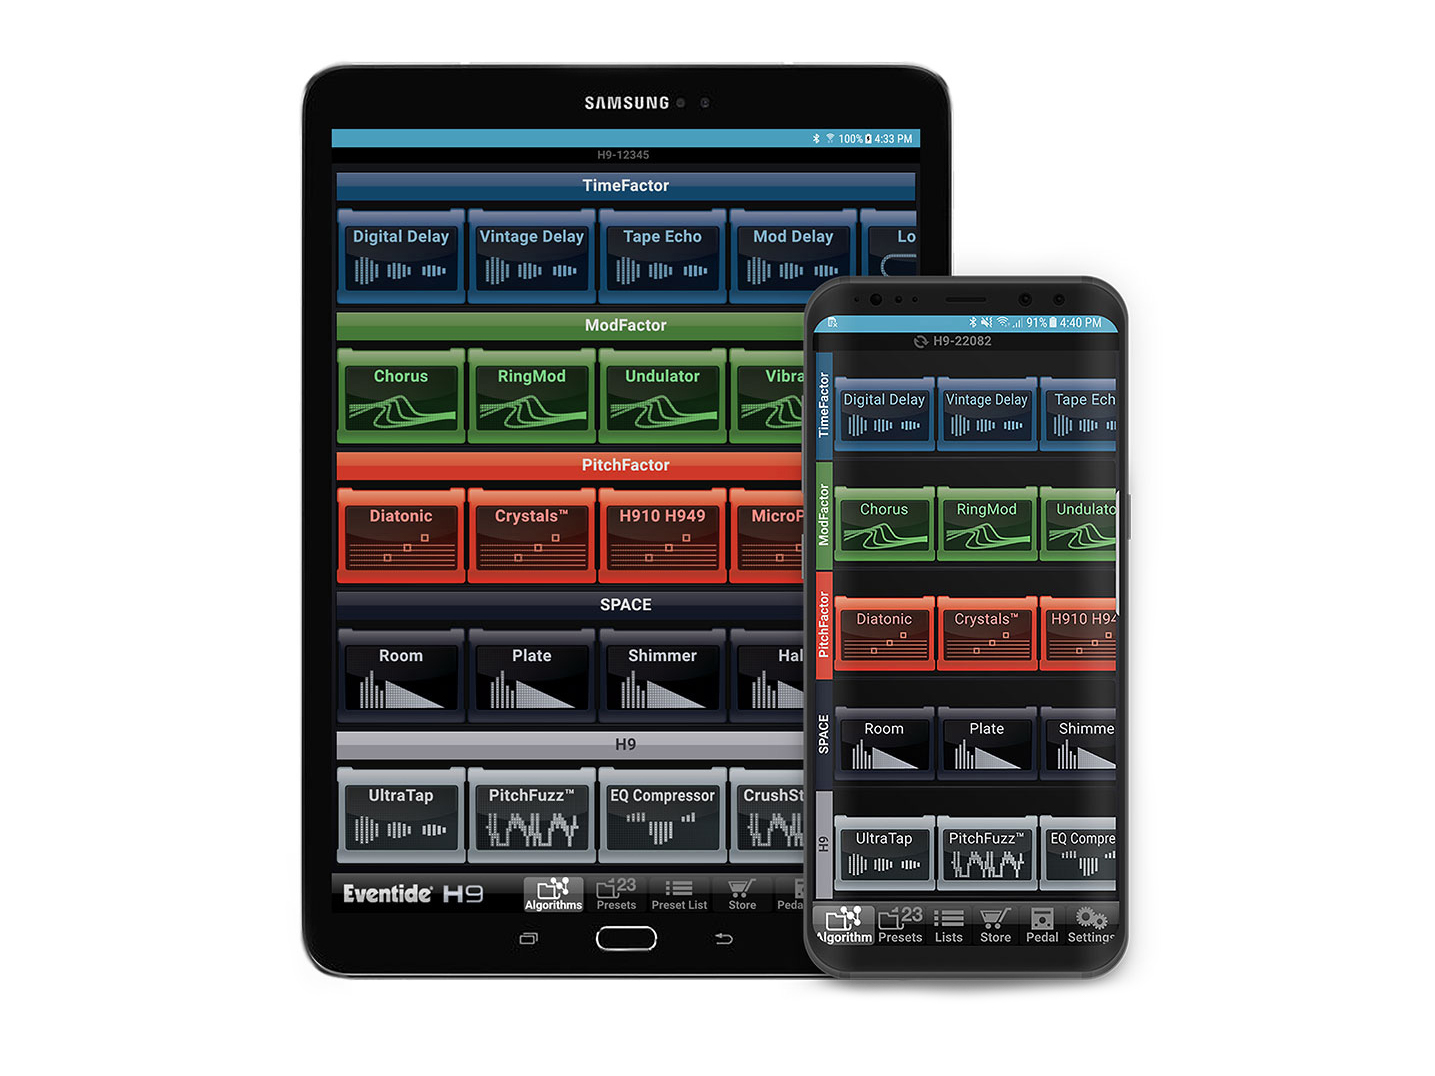 Eventide releases Android version of H9 Control app